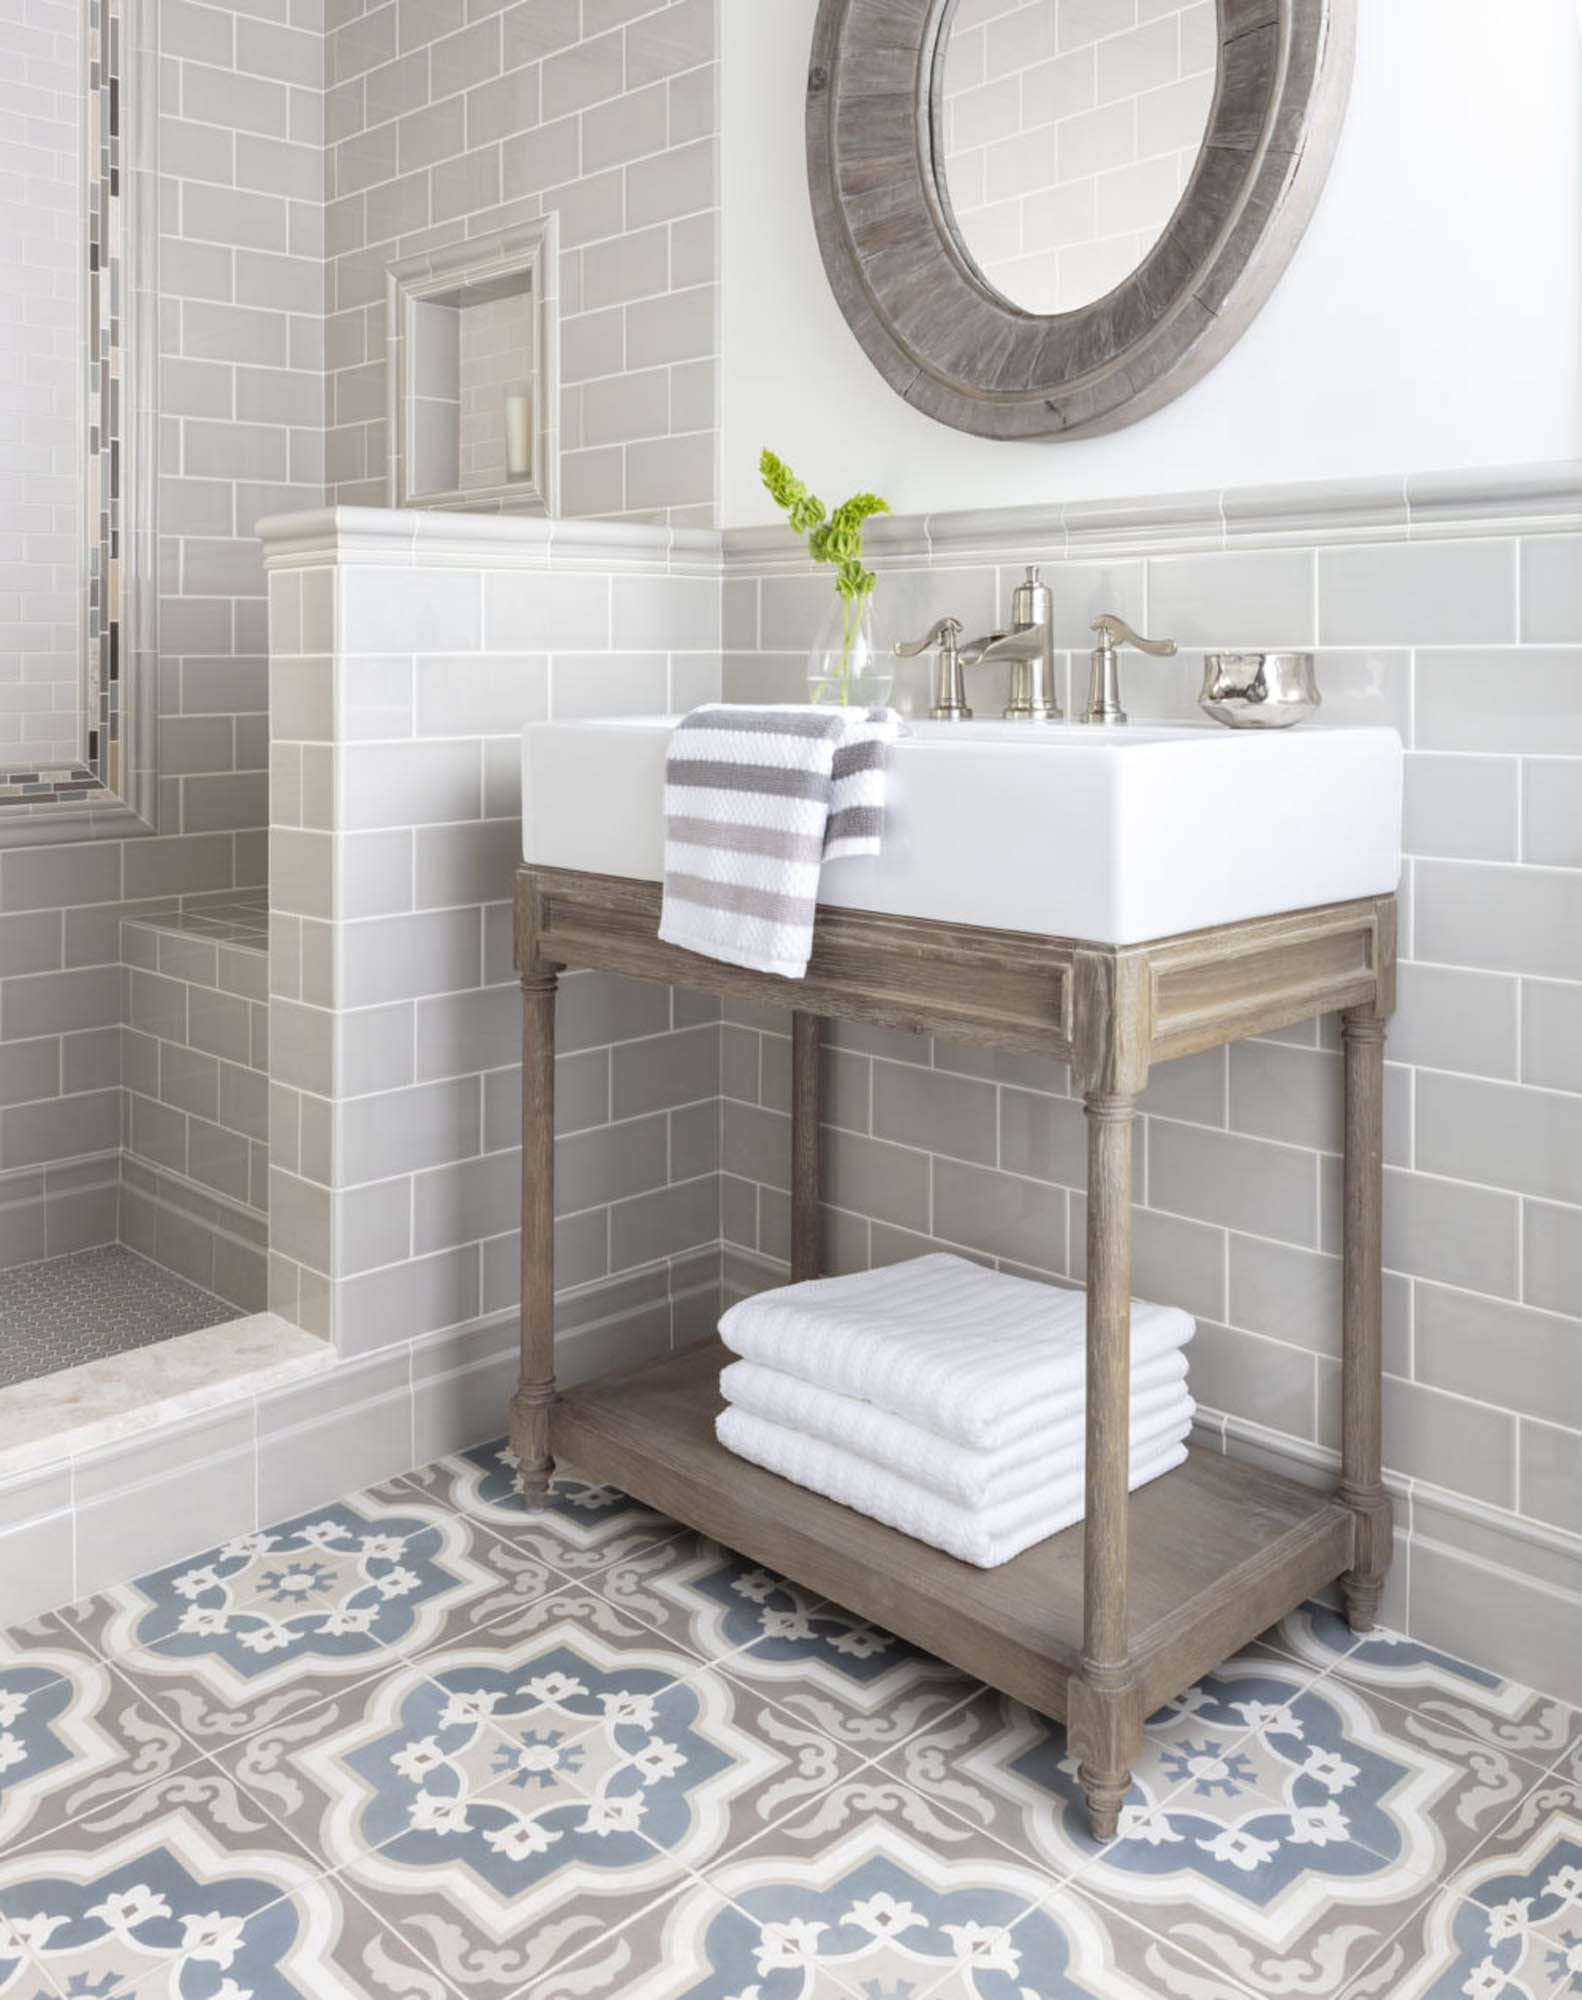 How to Achieve Modern Farmhouse Design with Tile - The ... on Modern Farmhouse Shower  id=53669